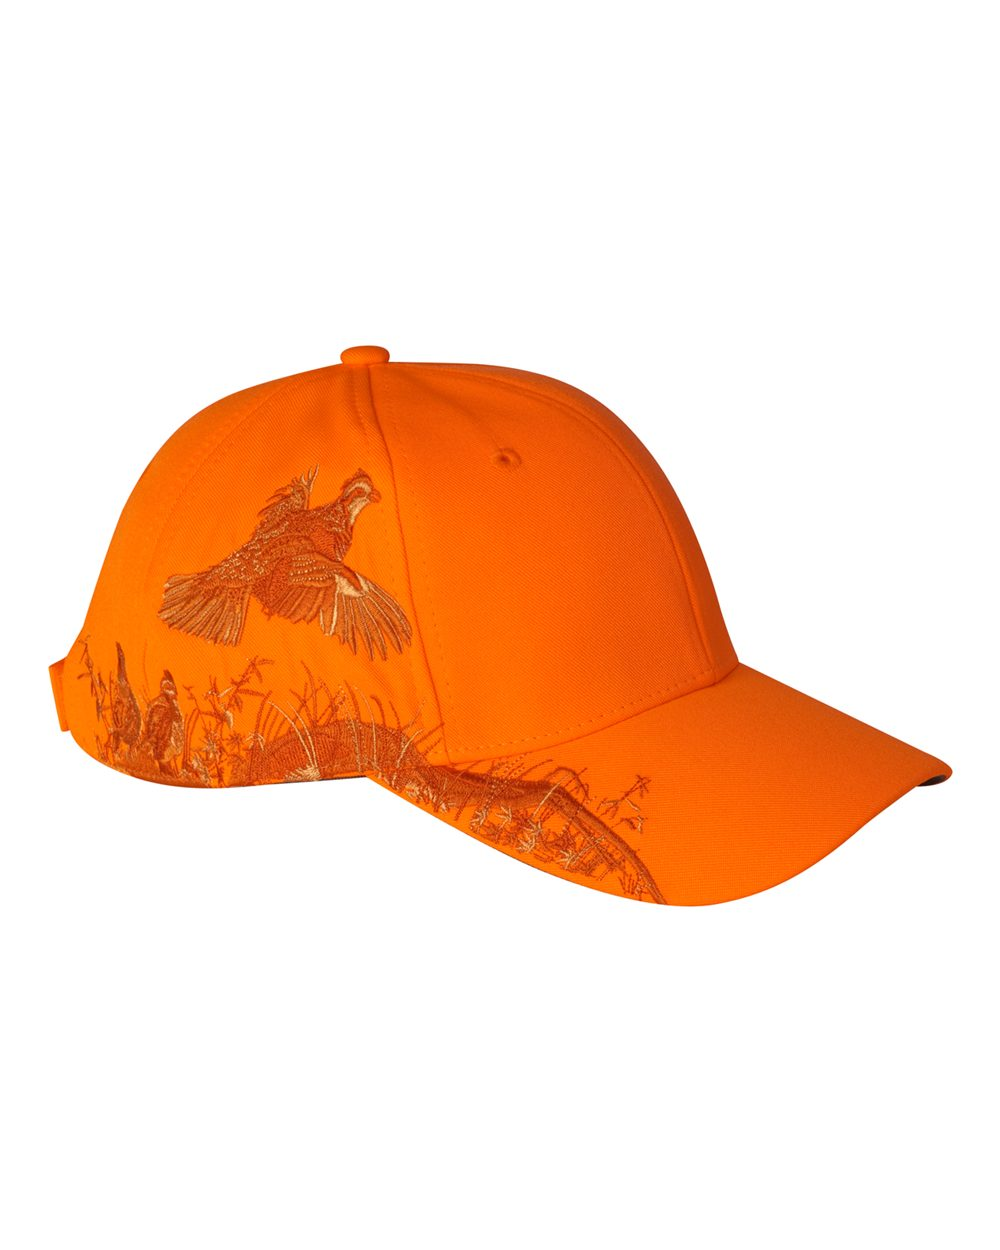 DRI DUCK Blaze Orange Quail - 3270